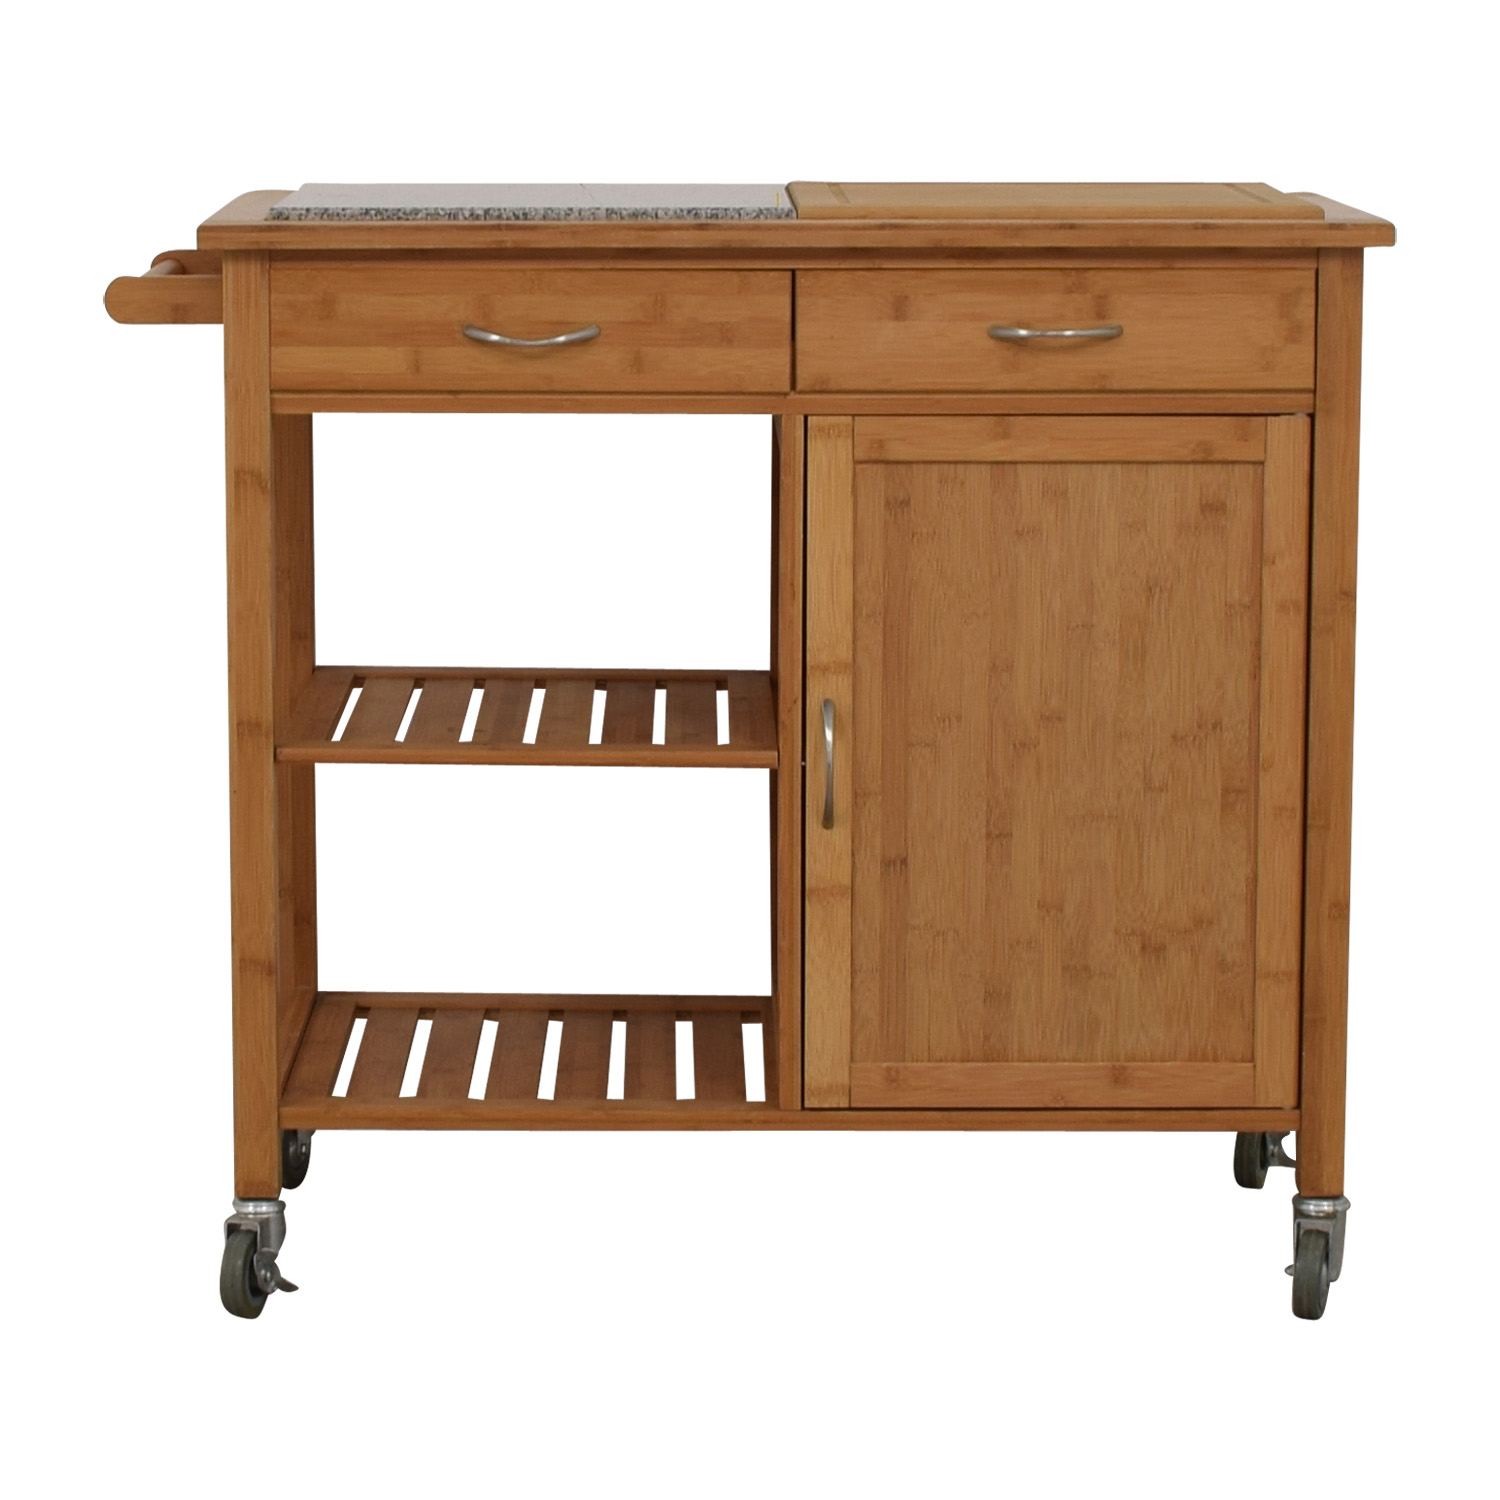 IKEA IKEA Natural Kitchen Island on Castors